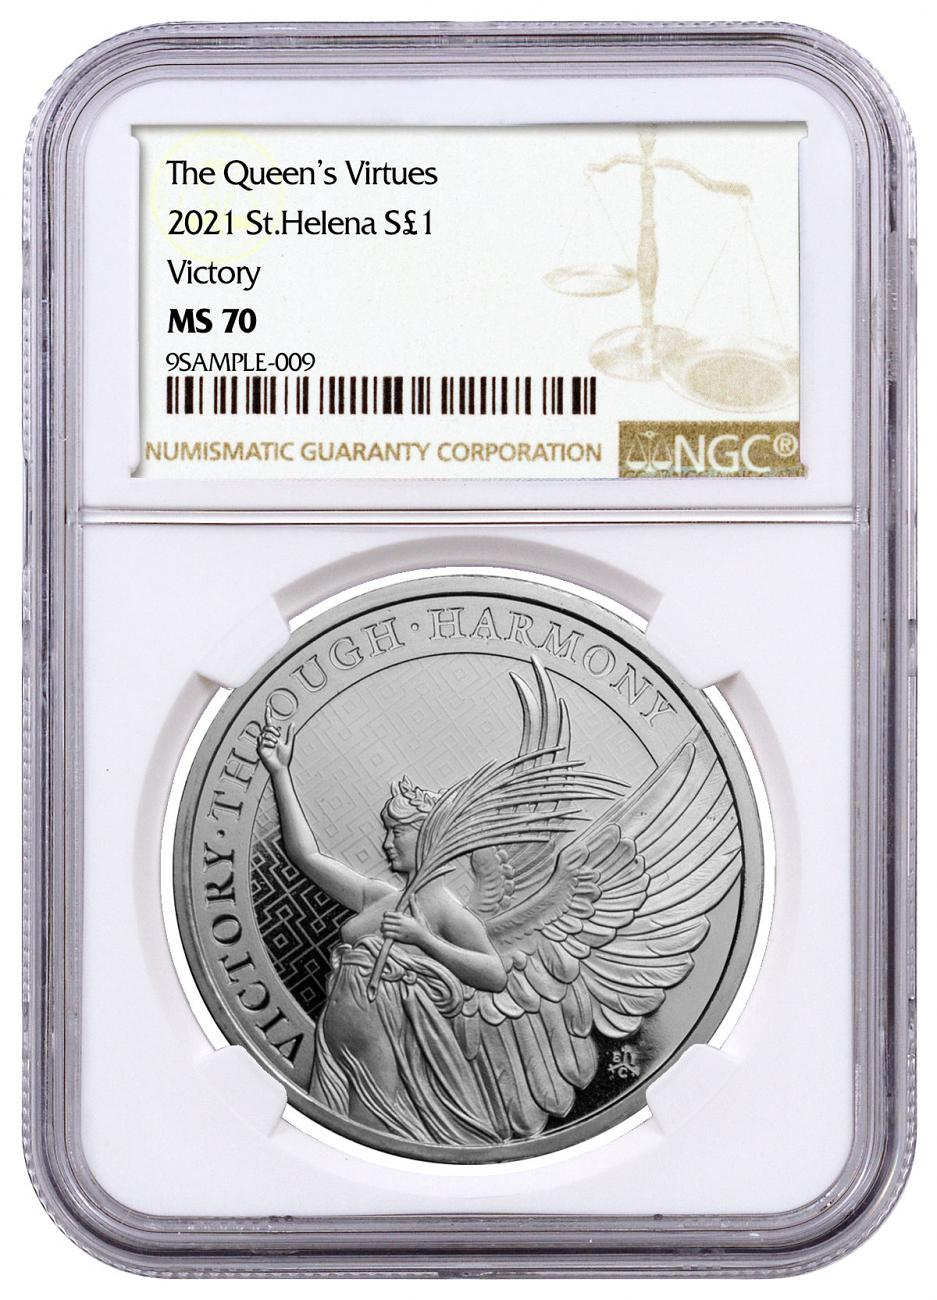 2021 Saint Helena 1 oz Silver Queen's Virtues - Victory £1 Coin NGC MS70